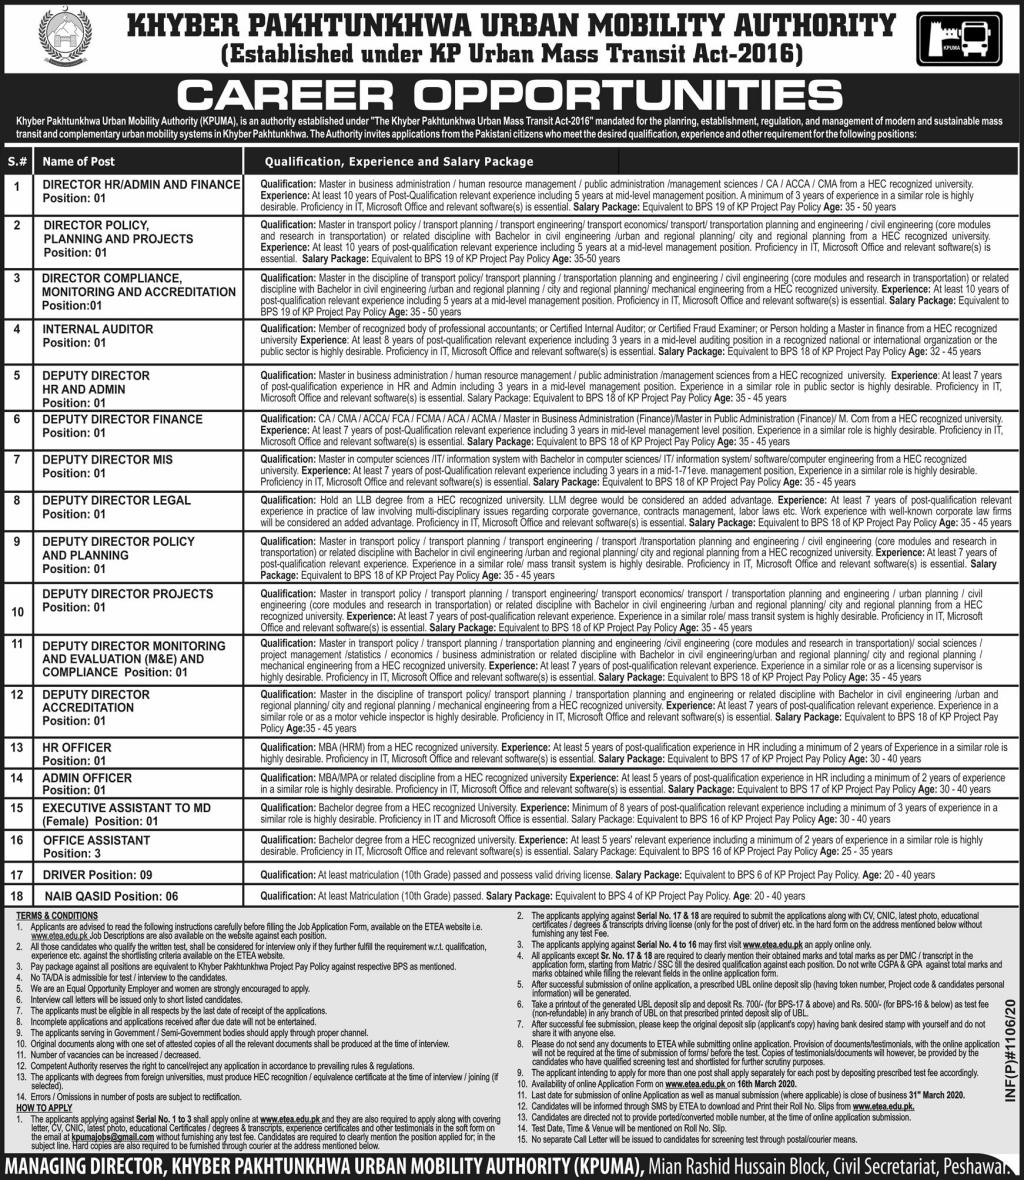 KPUMA KPK Urban Mobility Authority Jobs ETEA Roll No Slips